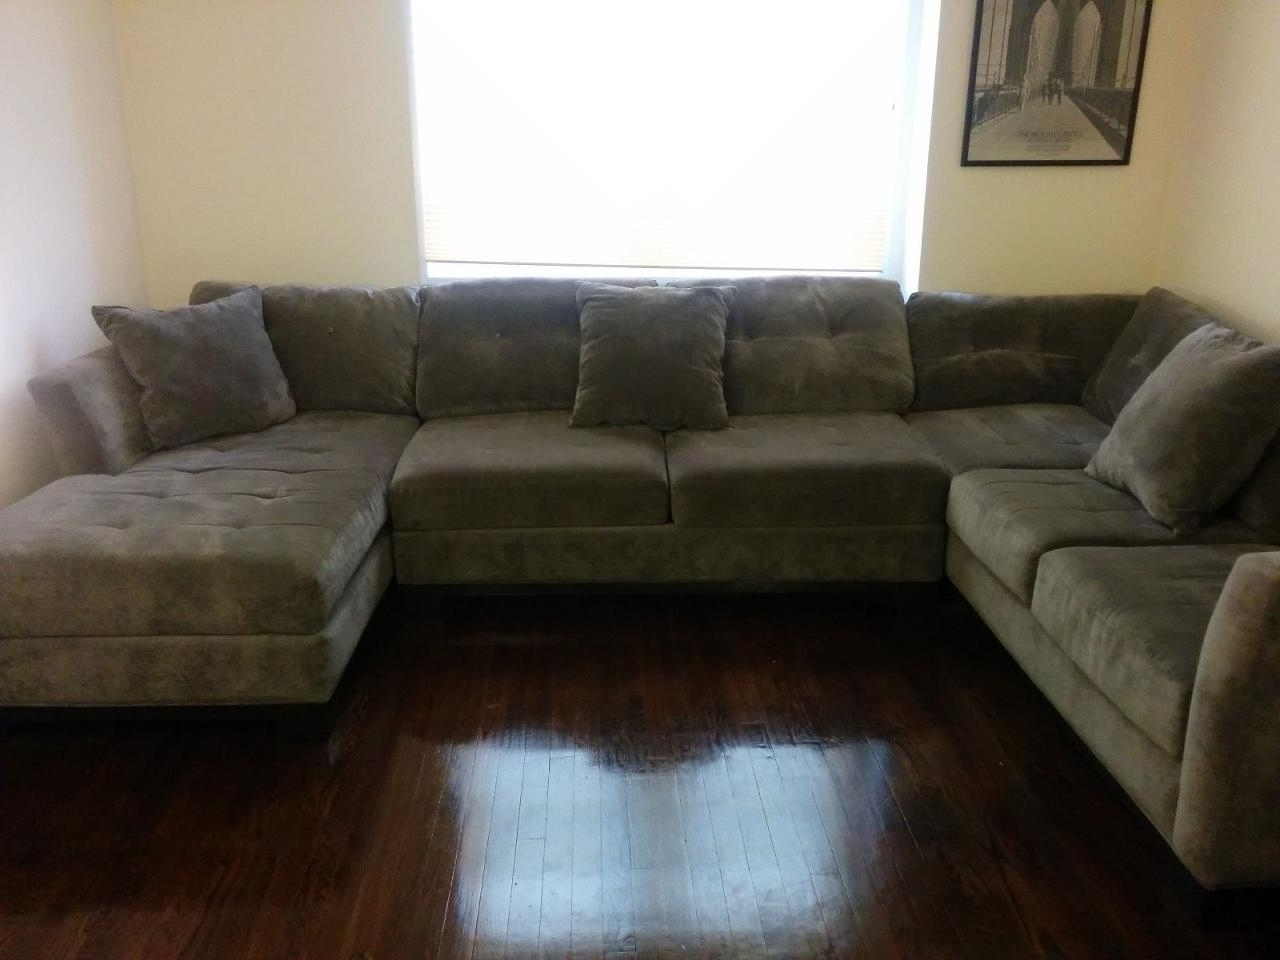 3 Piece Sectional Sofas With Chaise With Regard To Fashionable Elegant Elliot Sectional Sofa 3 Piece Chaise 67 For Mitchell Gold (View 4 of 15)